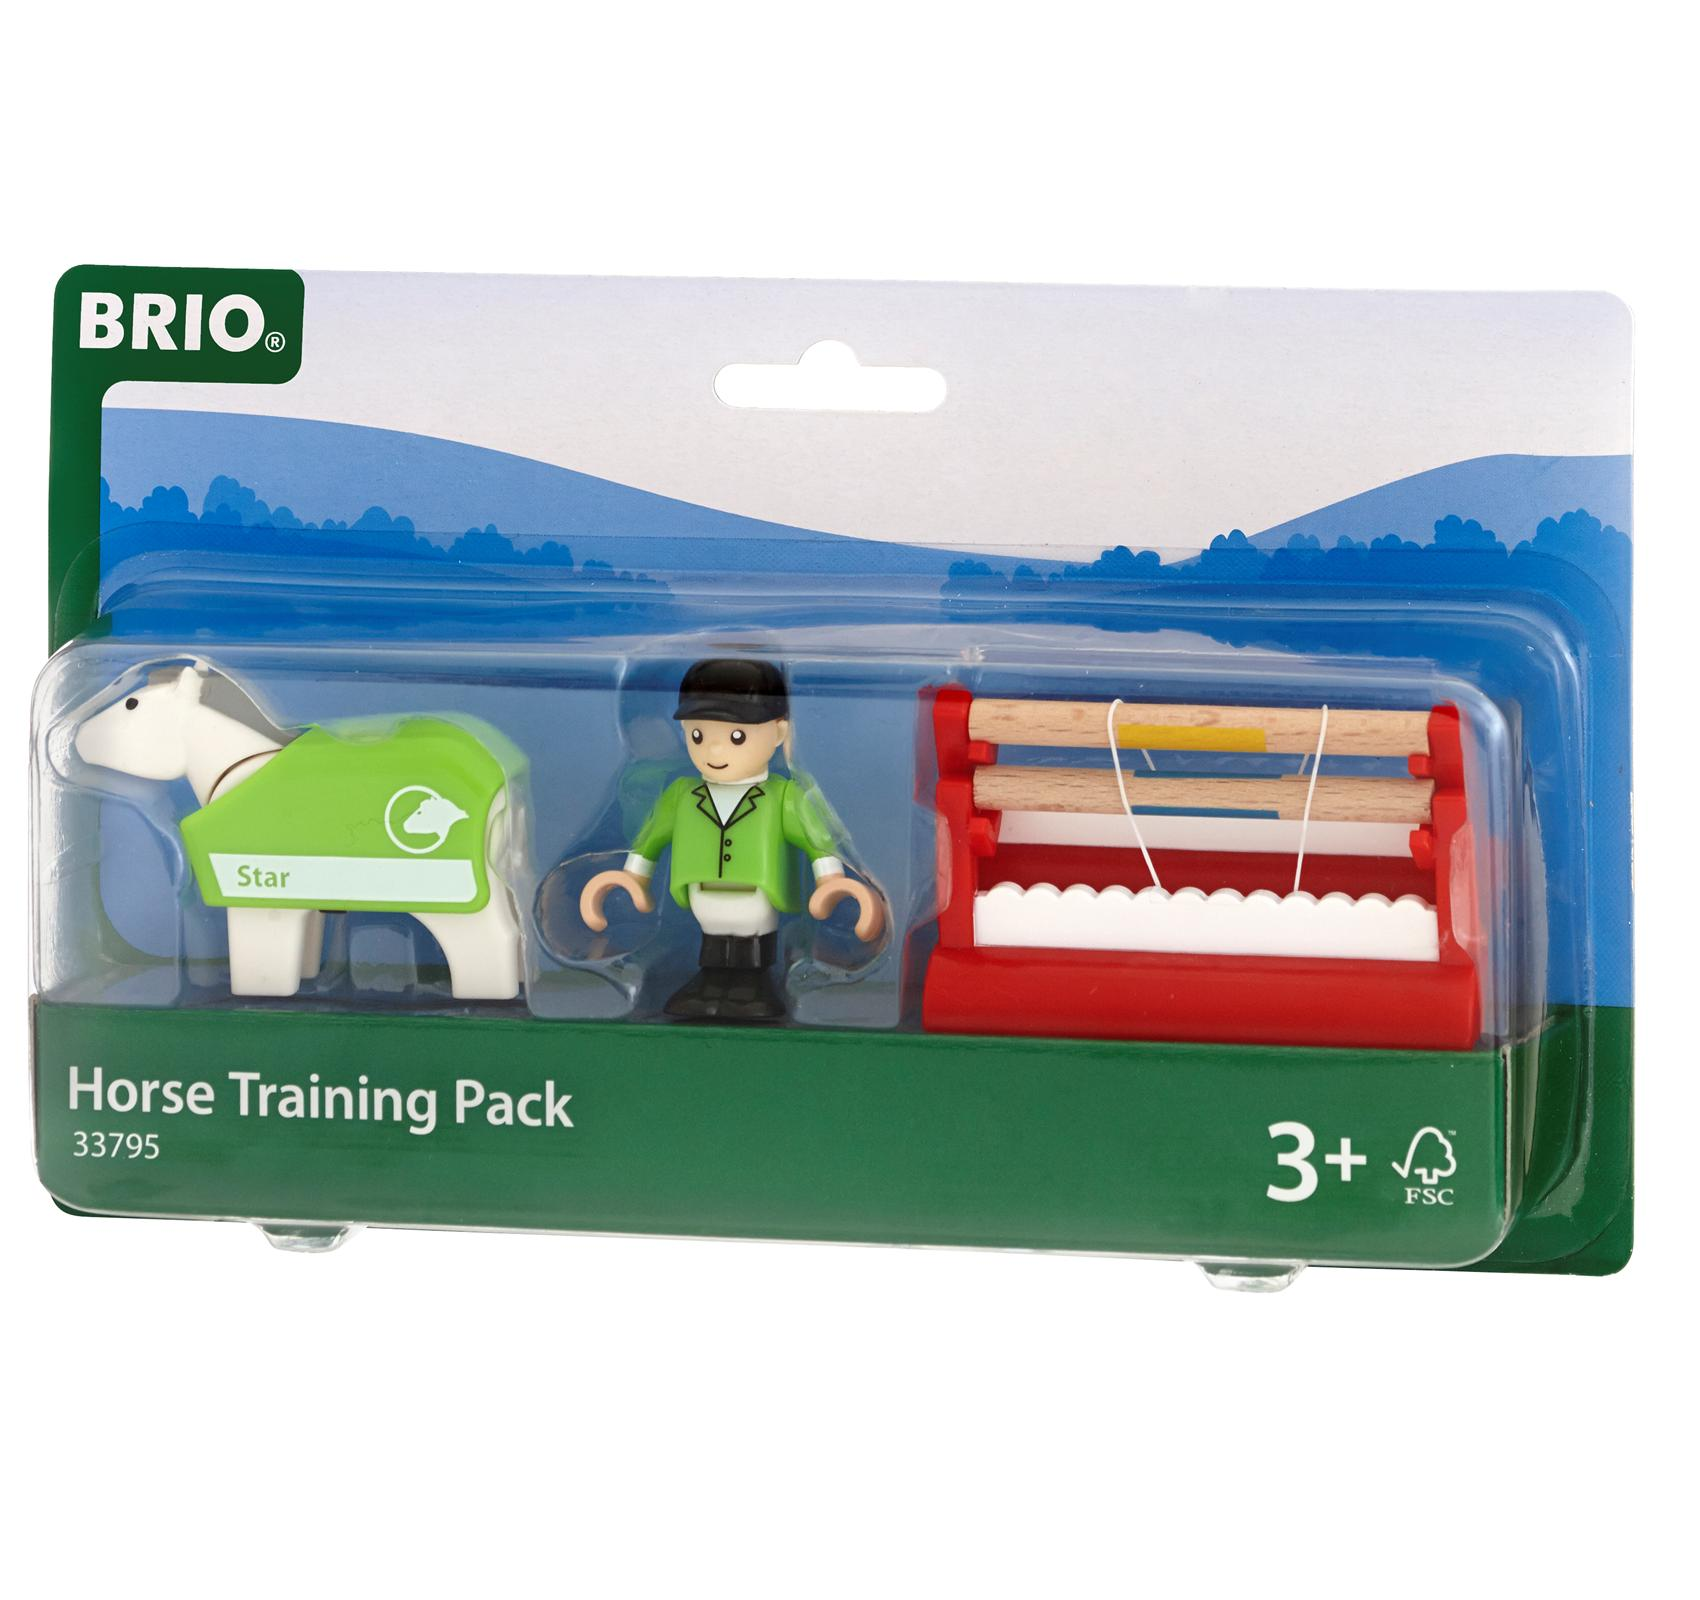 Horse Training Pack